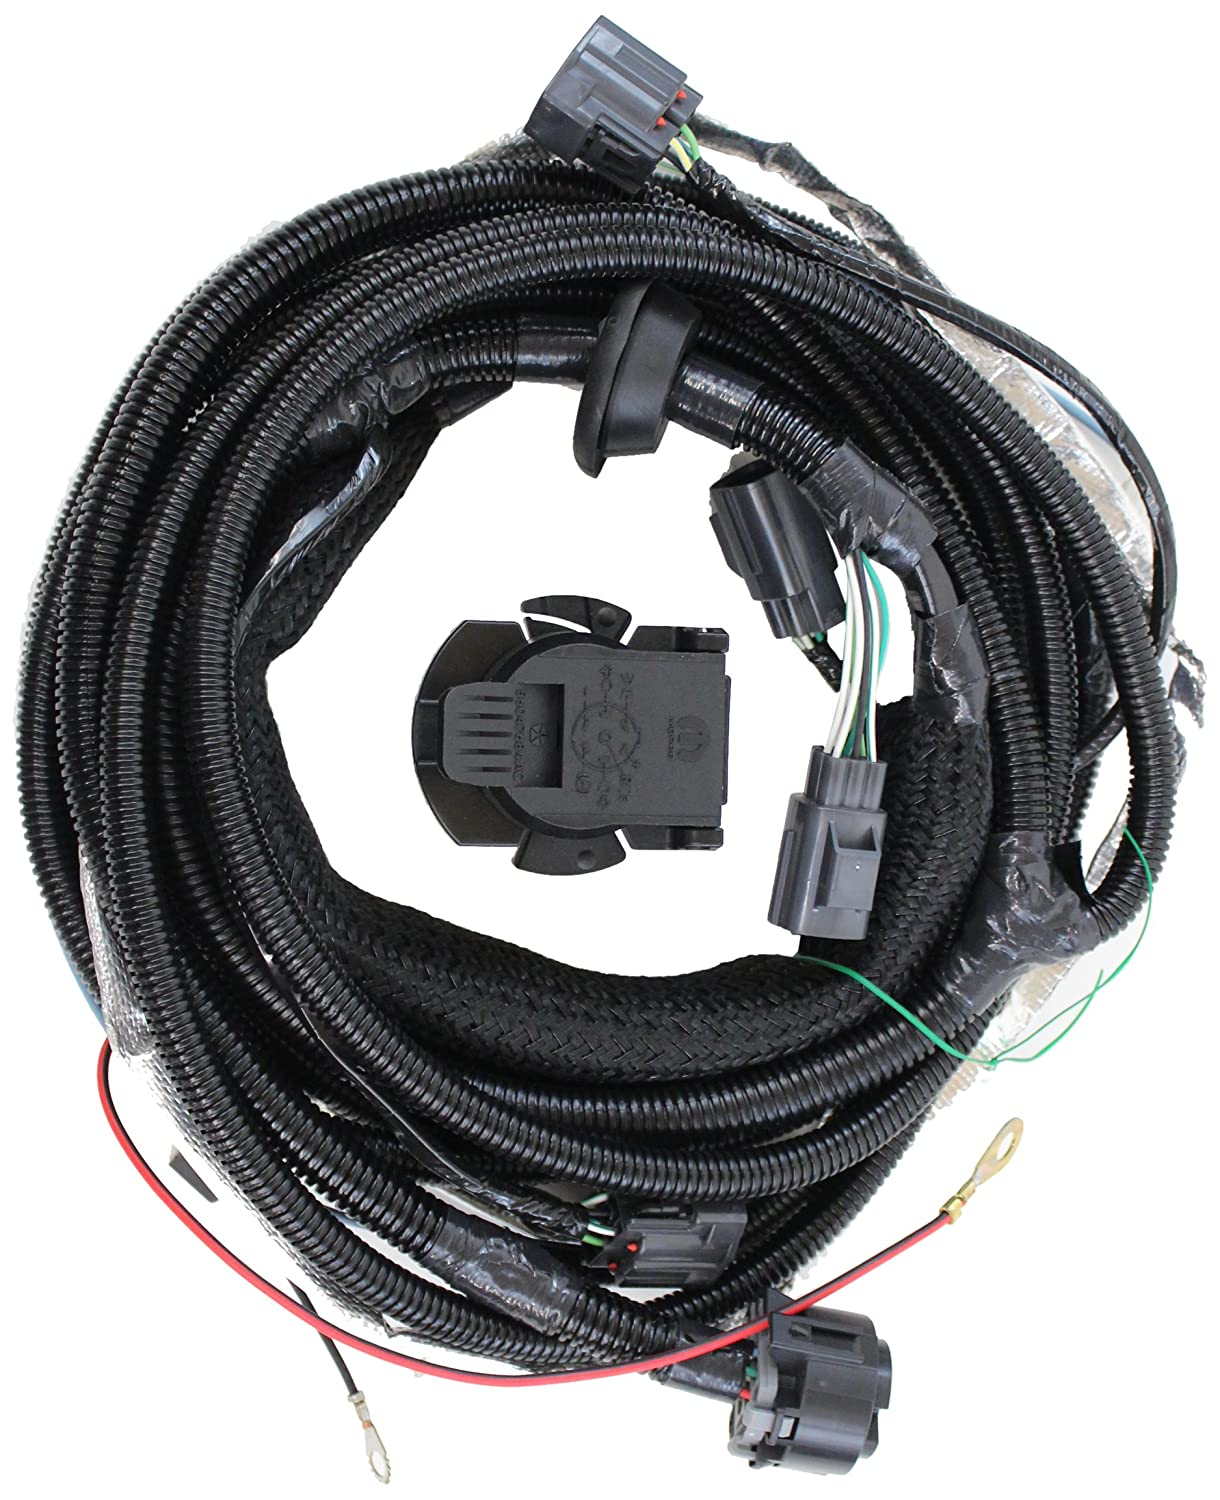 Amazon.com: Genuine Jeep Accessories 82210642AD Trailer Tow Wiring Harness:  Automotive